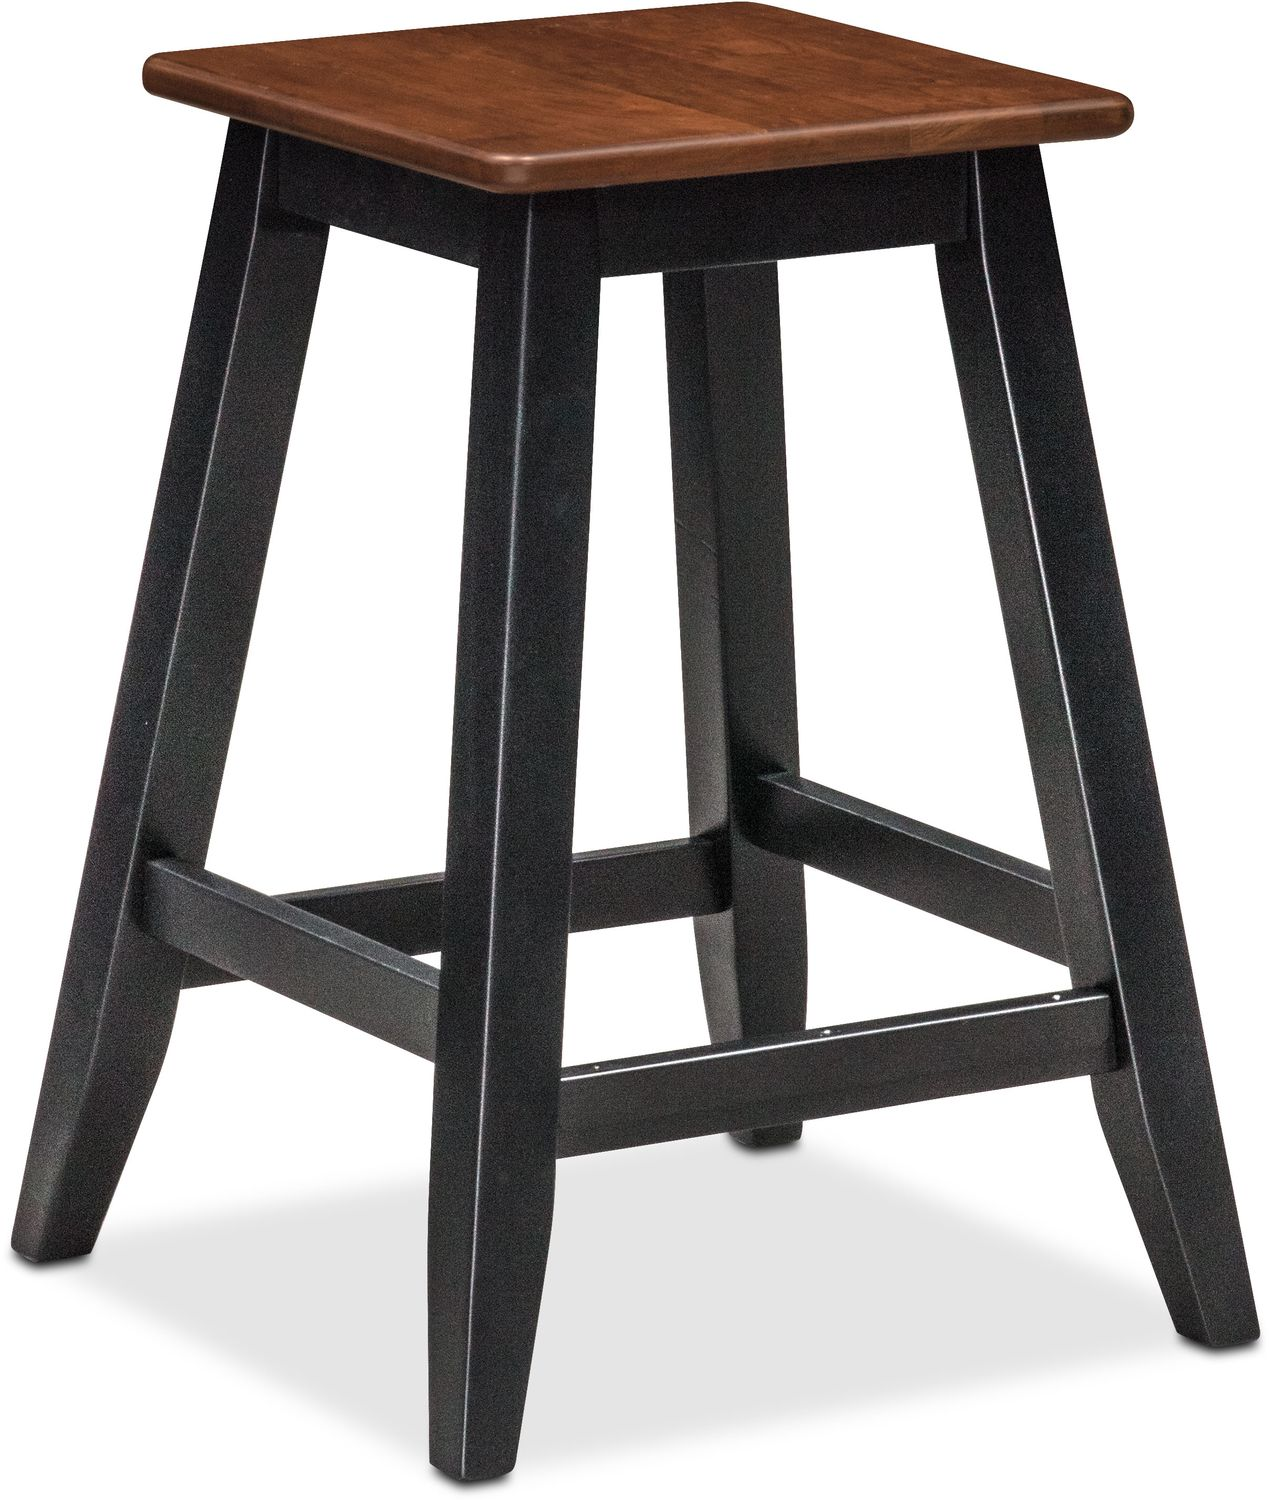 nantucket breakfast bar and 2 stools black and cherry